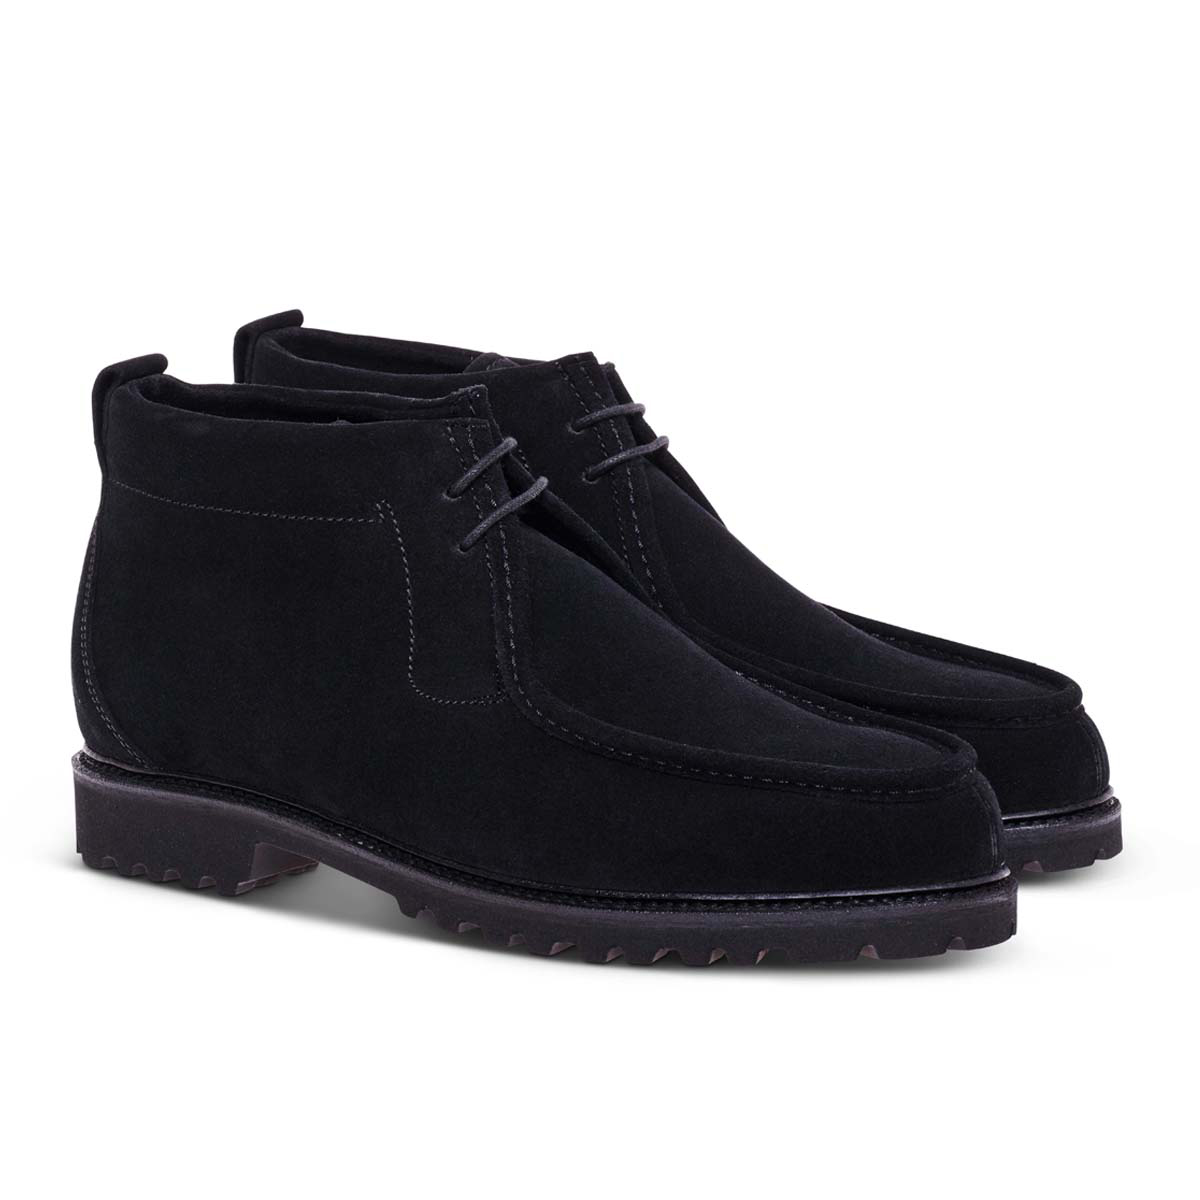 Black Suede Leather Touring Boots